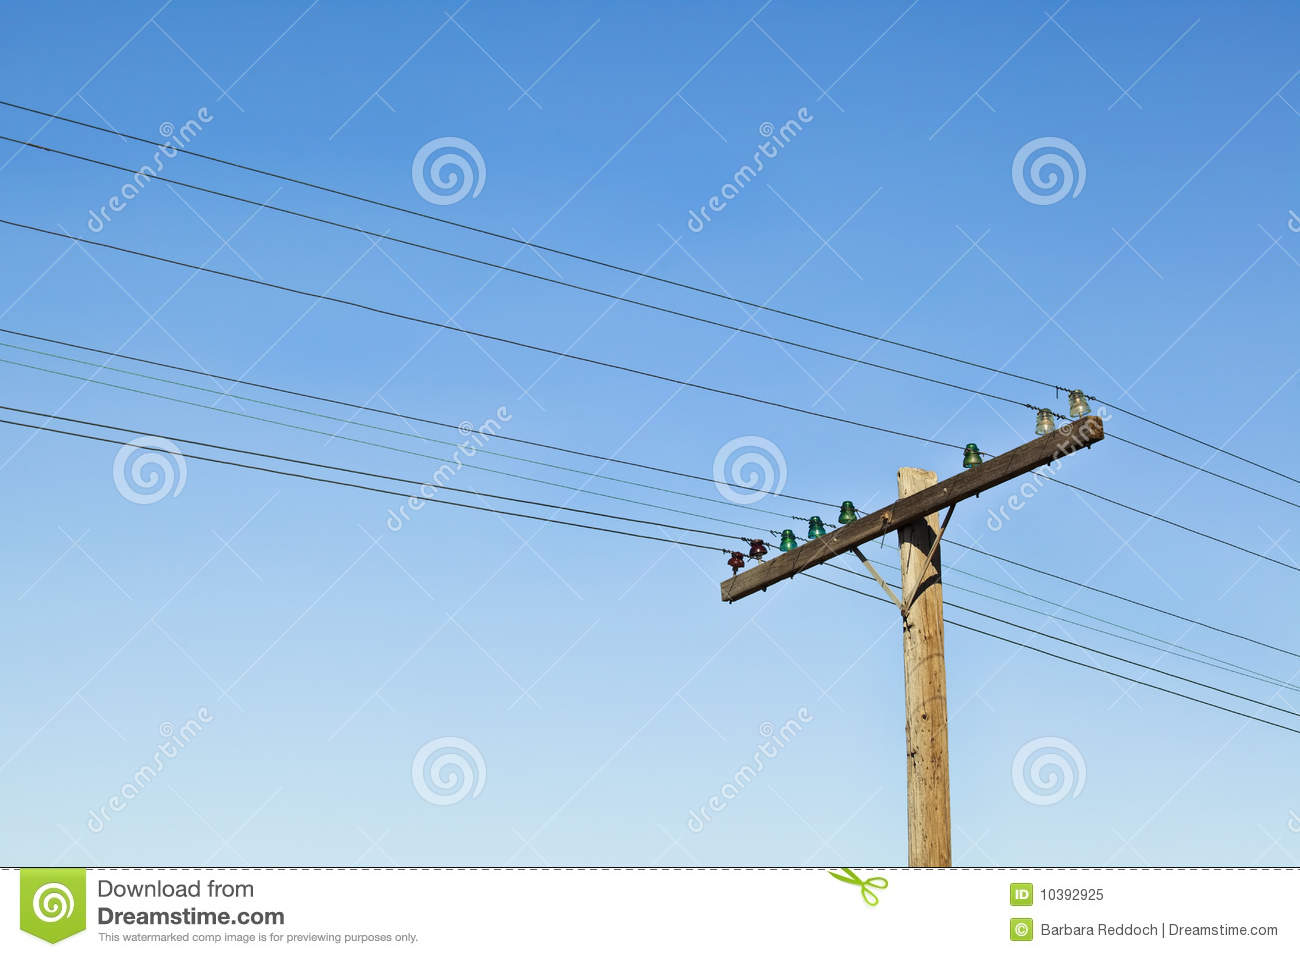 Antique Telephone Poles Background Stock Image - Image of lines